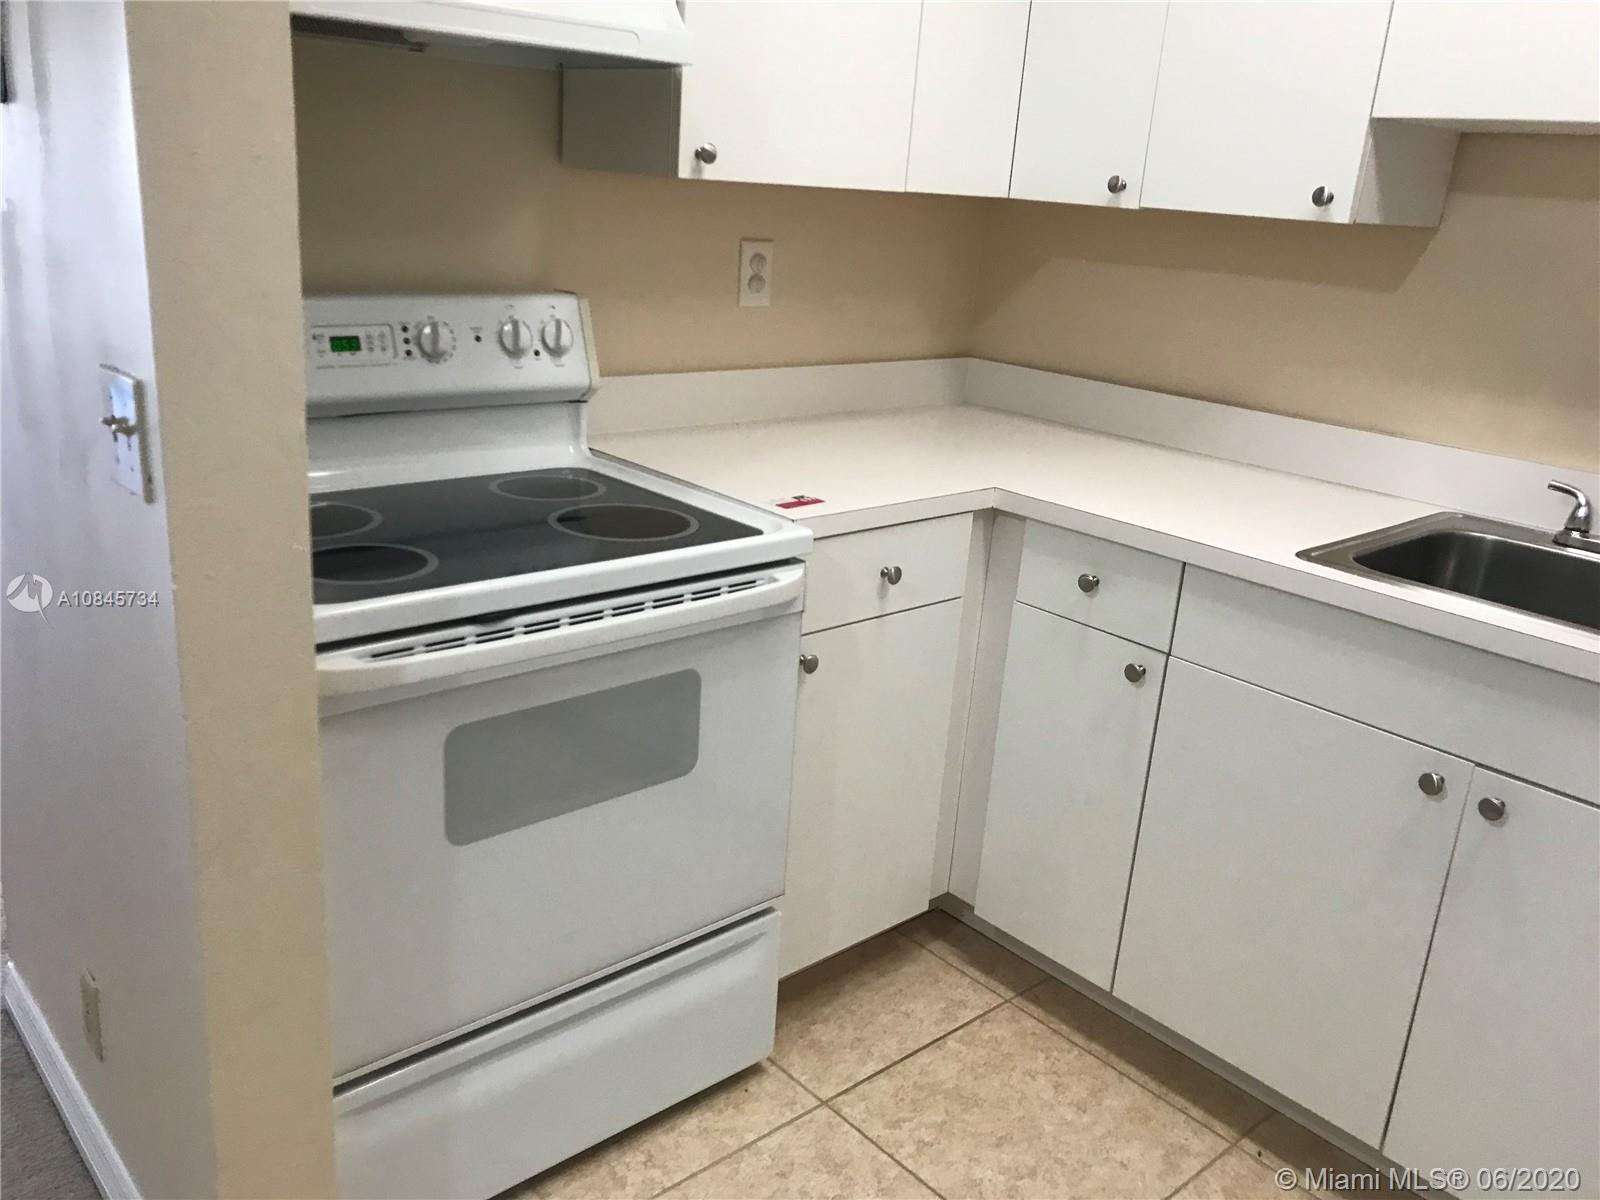 Investors welcome - able to rent immediately. Light & bright with newly remodeled kitchen, updated bathroom with washer & dryer included. Cute, clean and ready to go! Second floor unit, convenient location and excellent schools. Will be freshly painted and cleaned.